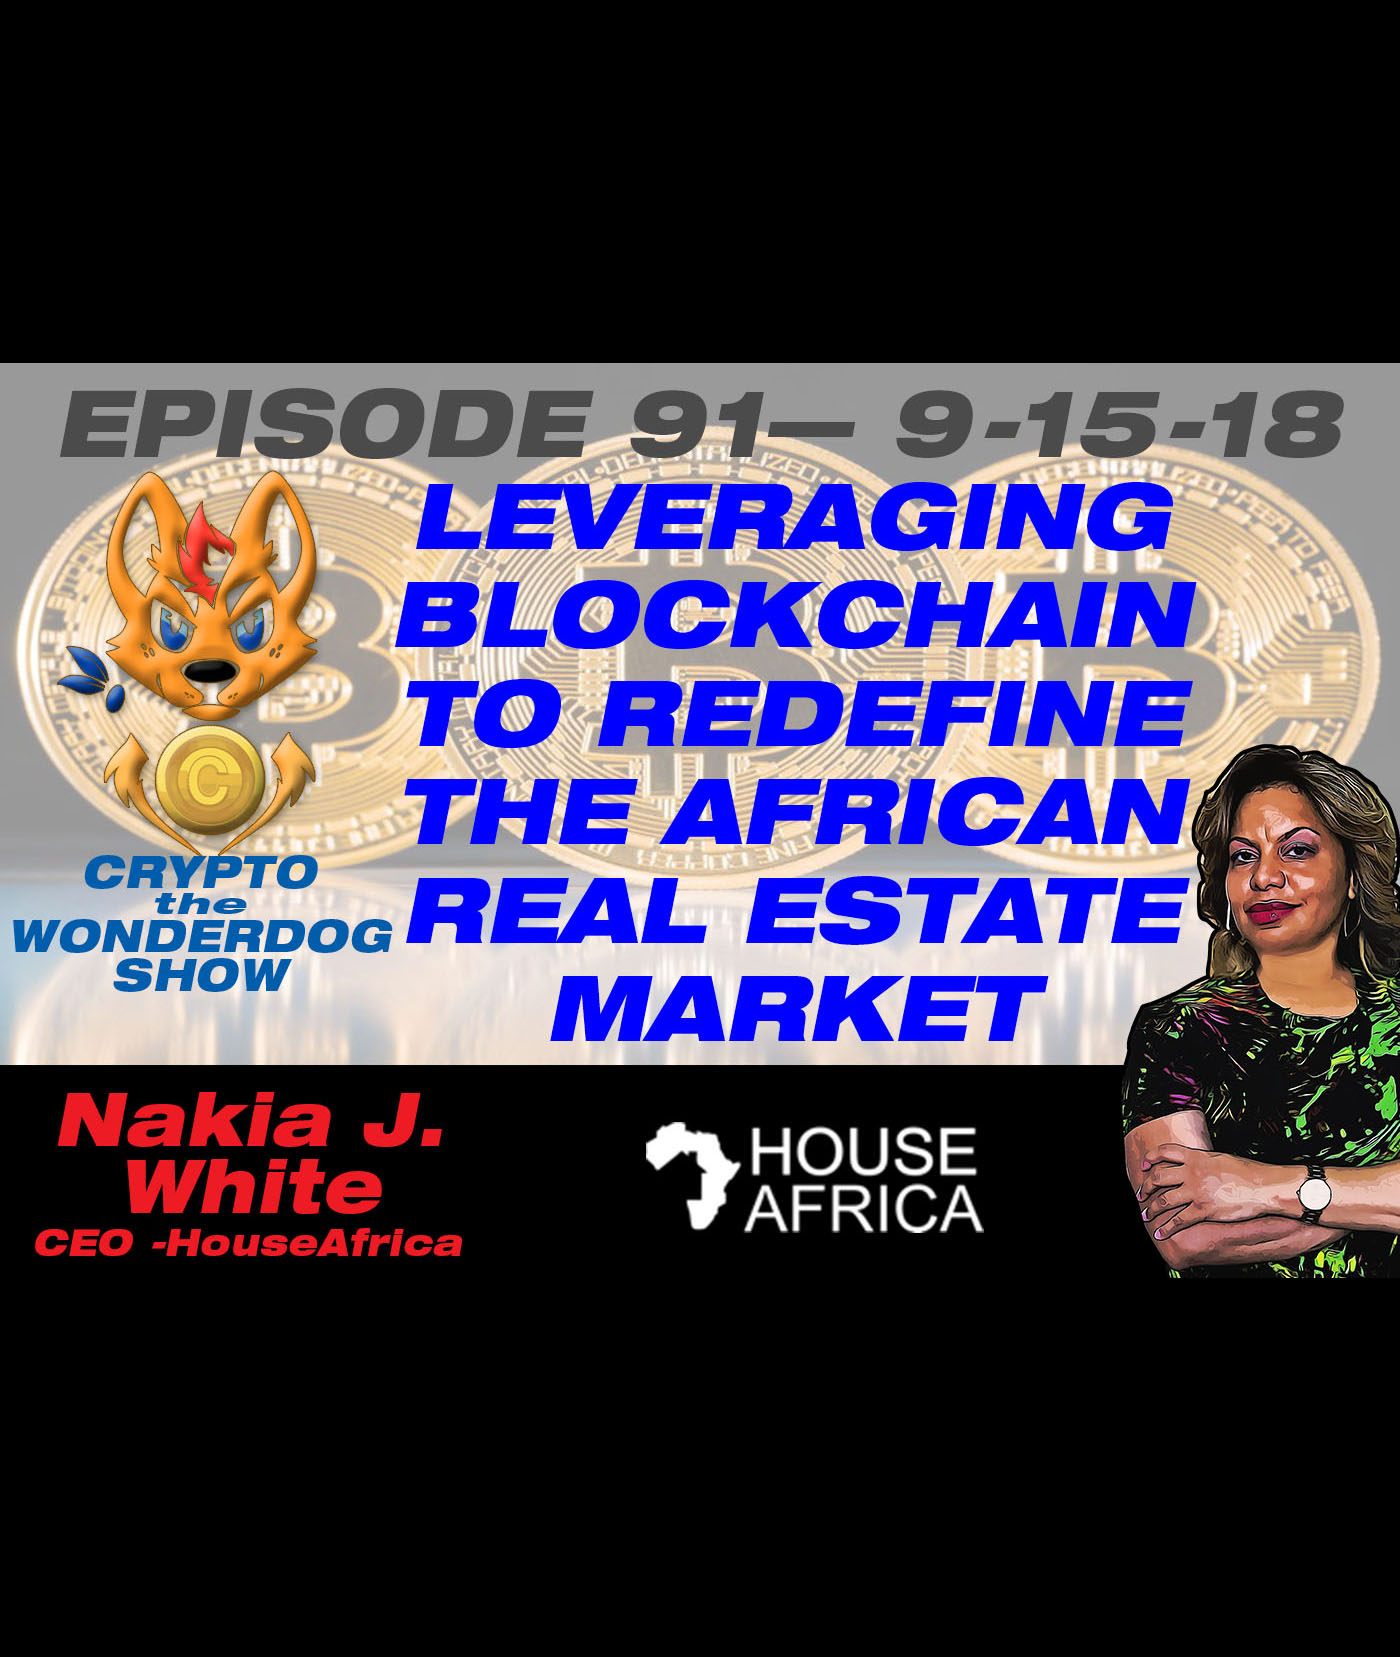 E91 - Leveraging blockchain to redefine the African Real Estate Market - HouseAfrica - Nakia J. White